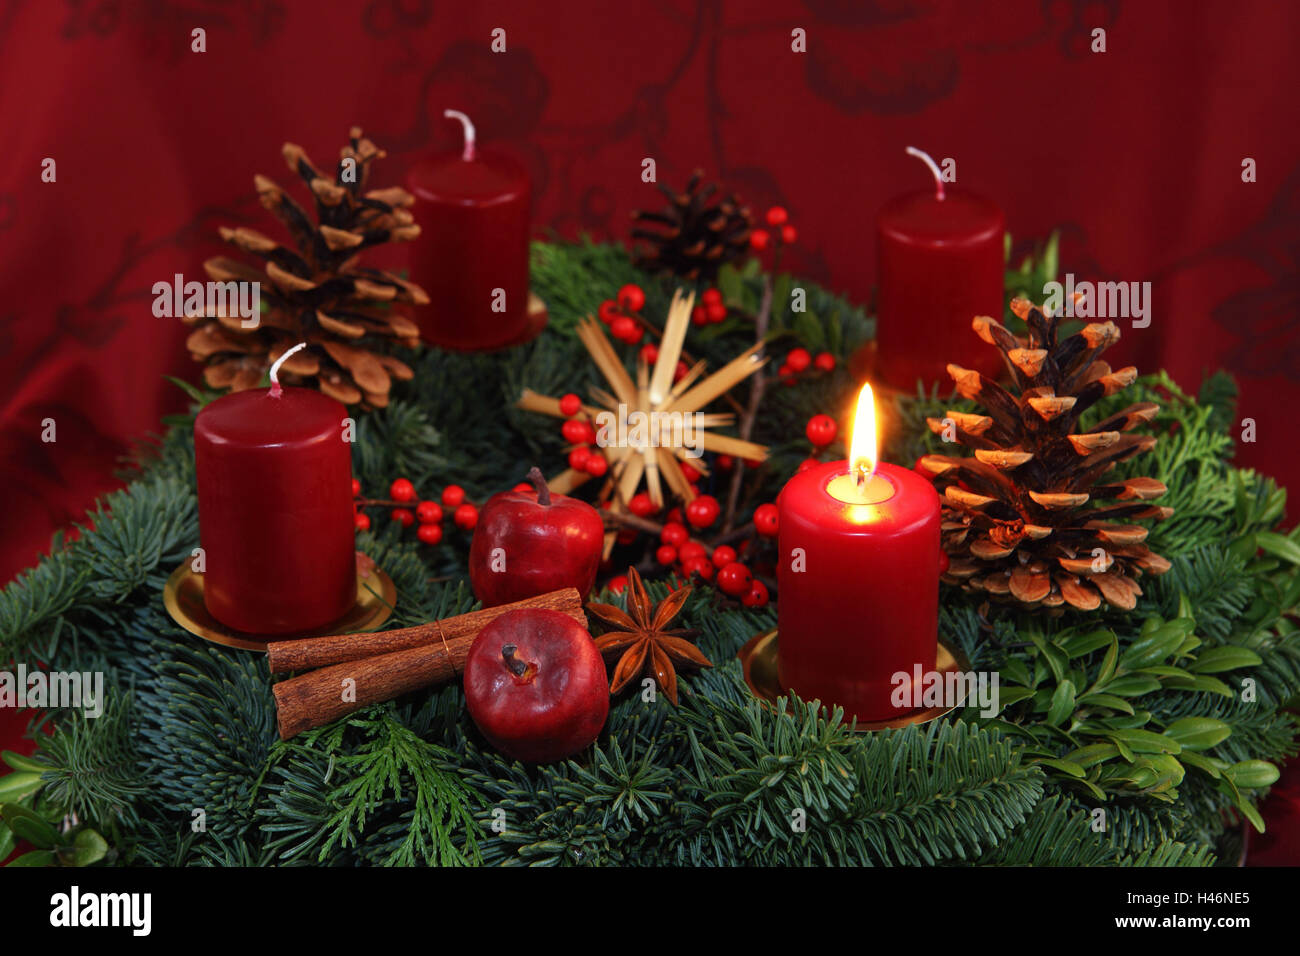 advent burning candle stockfotos advent burning candle bilder seite 2 alamy